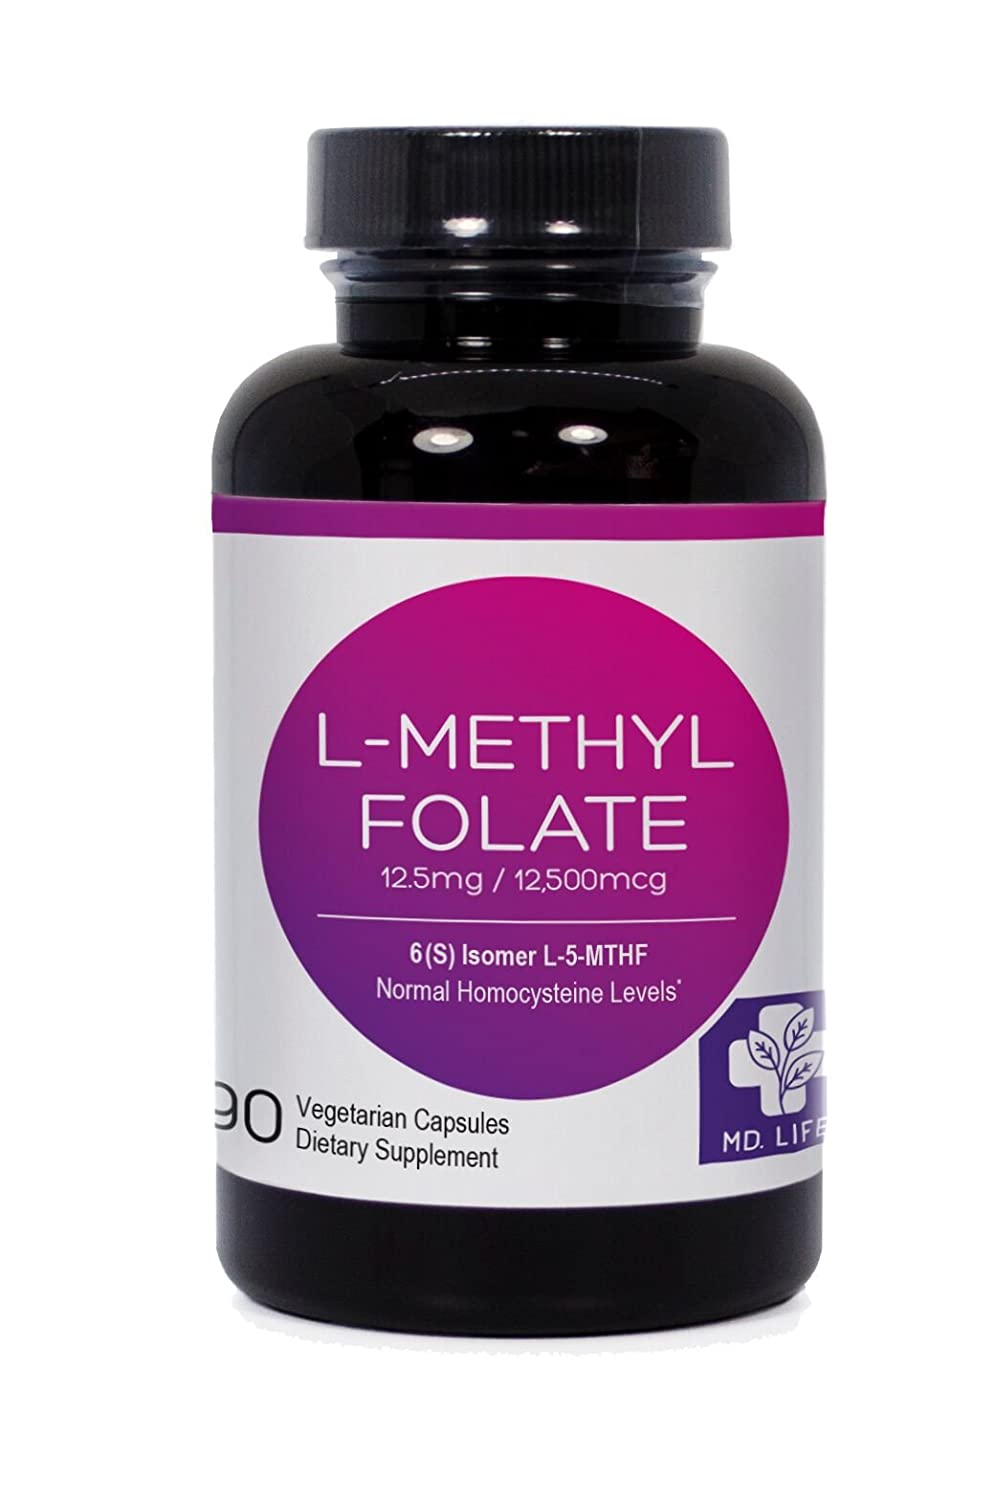 MD.LIFE 5-MTHF L-Methylfolate 12.5 MG Professional Strength Active Folate 90 Capsules 90